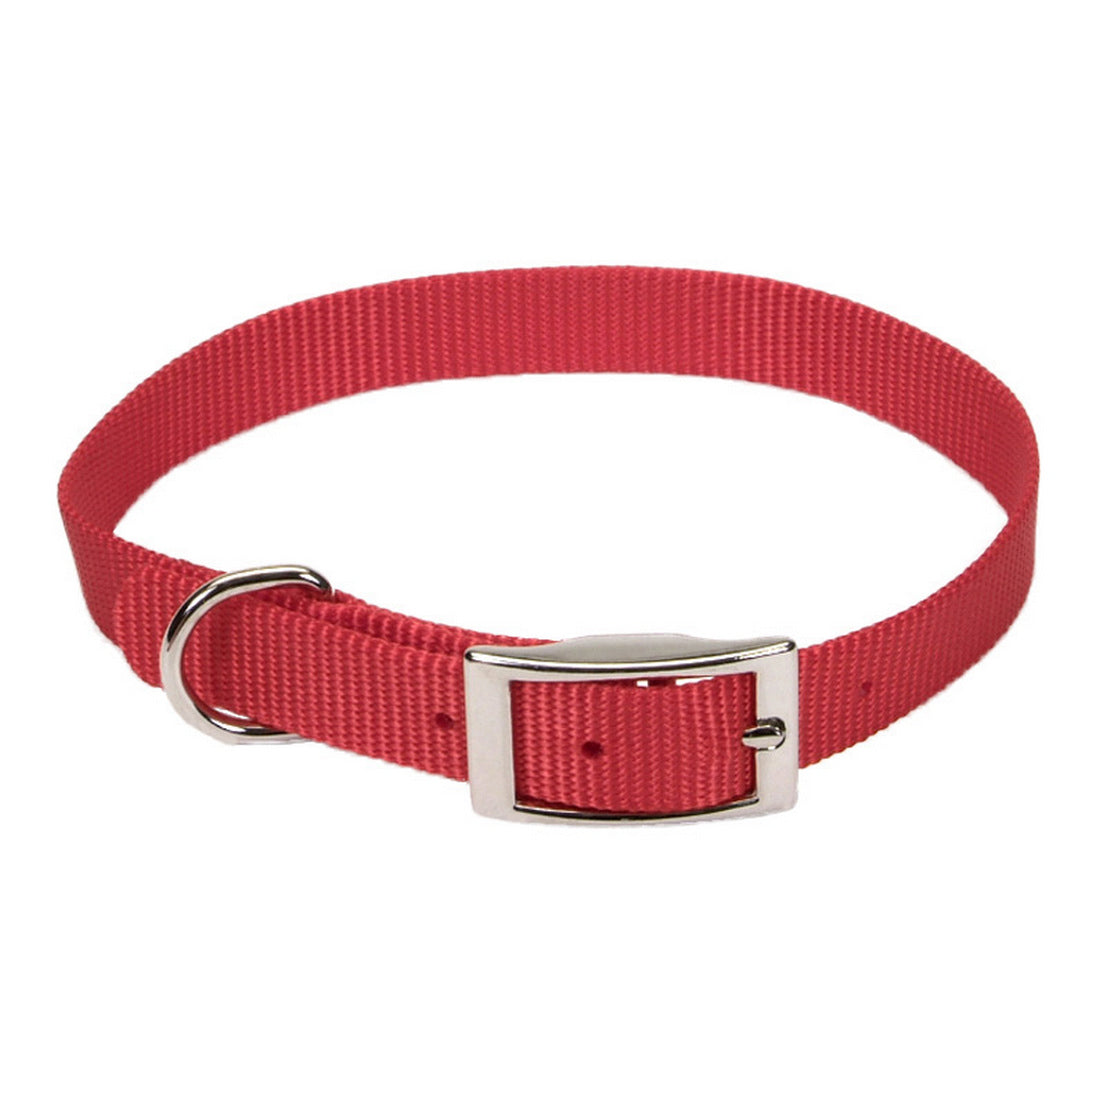 "Coastal Nylon Collar 12"" - 5/8"" Red"